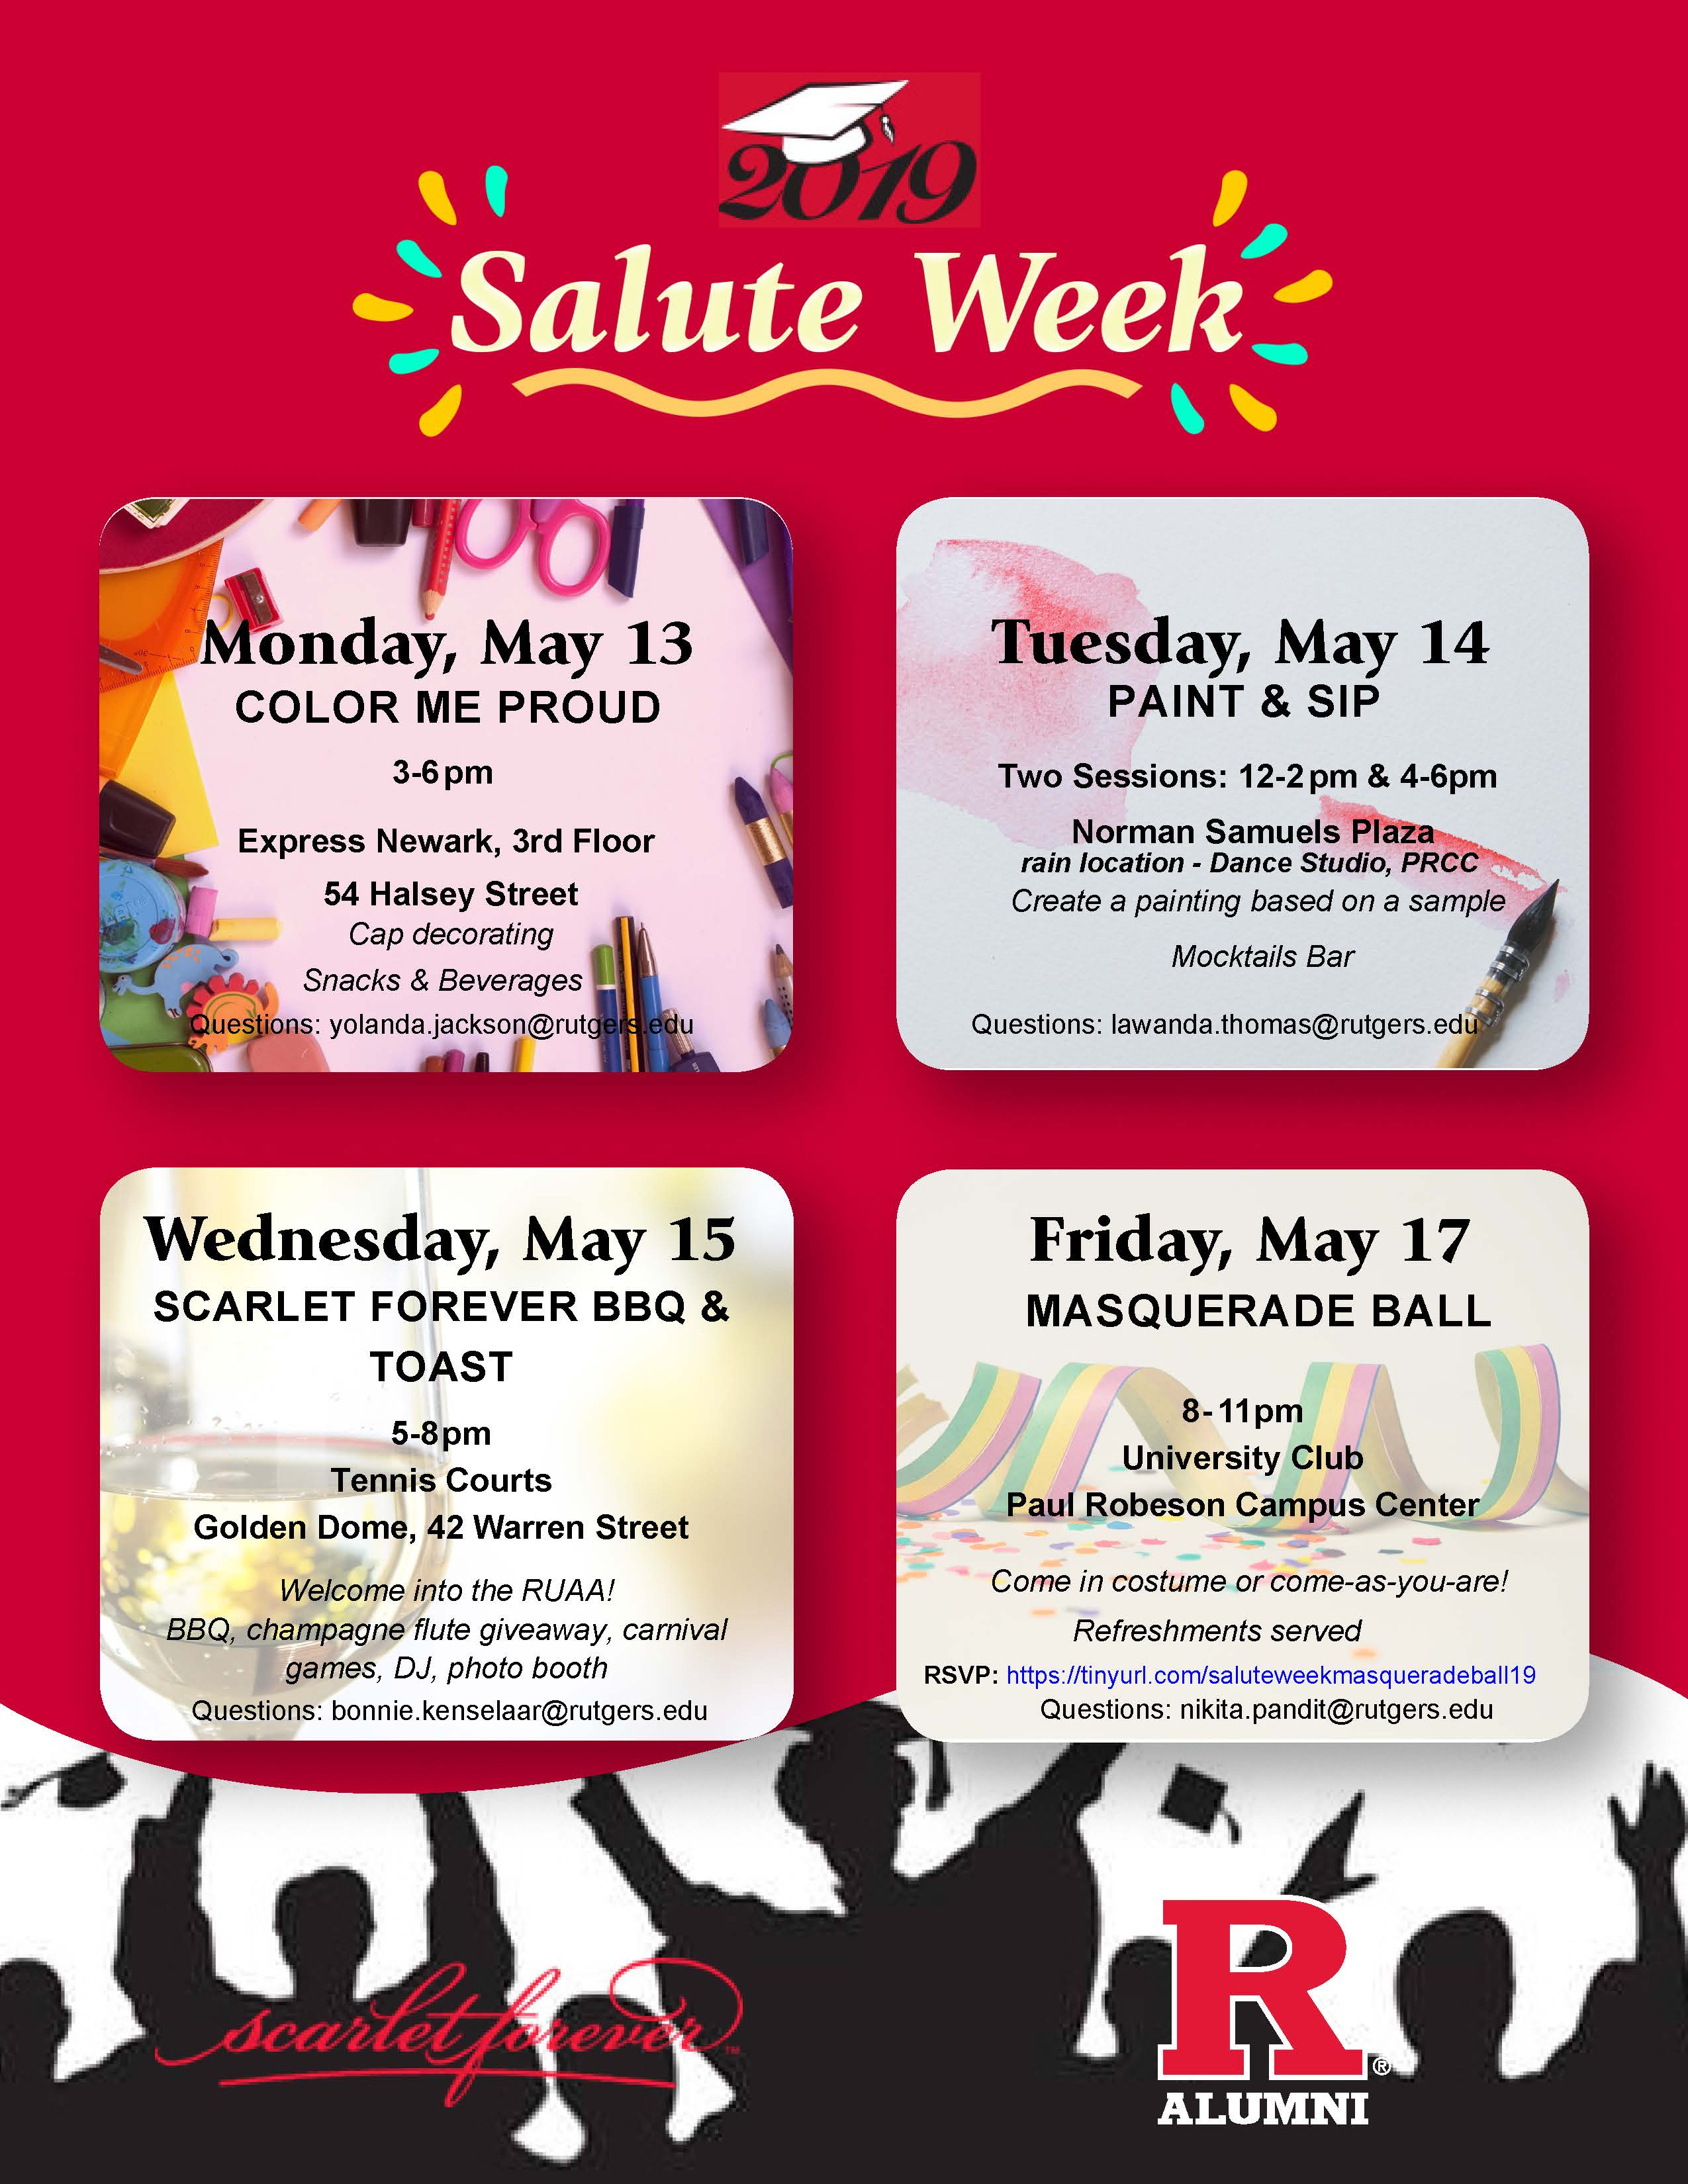 salute week events flyer